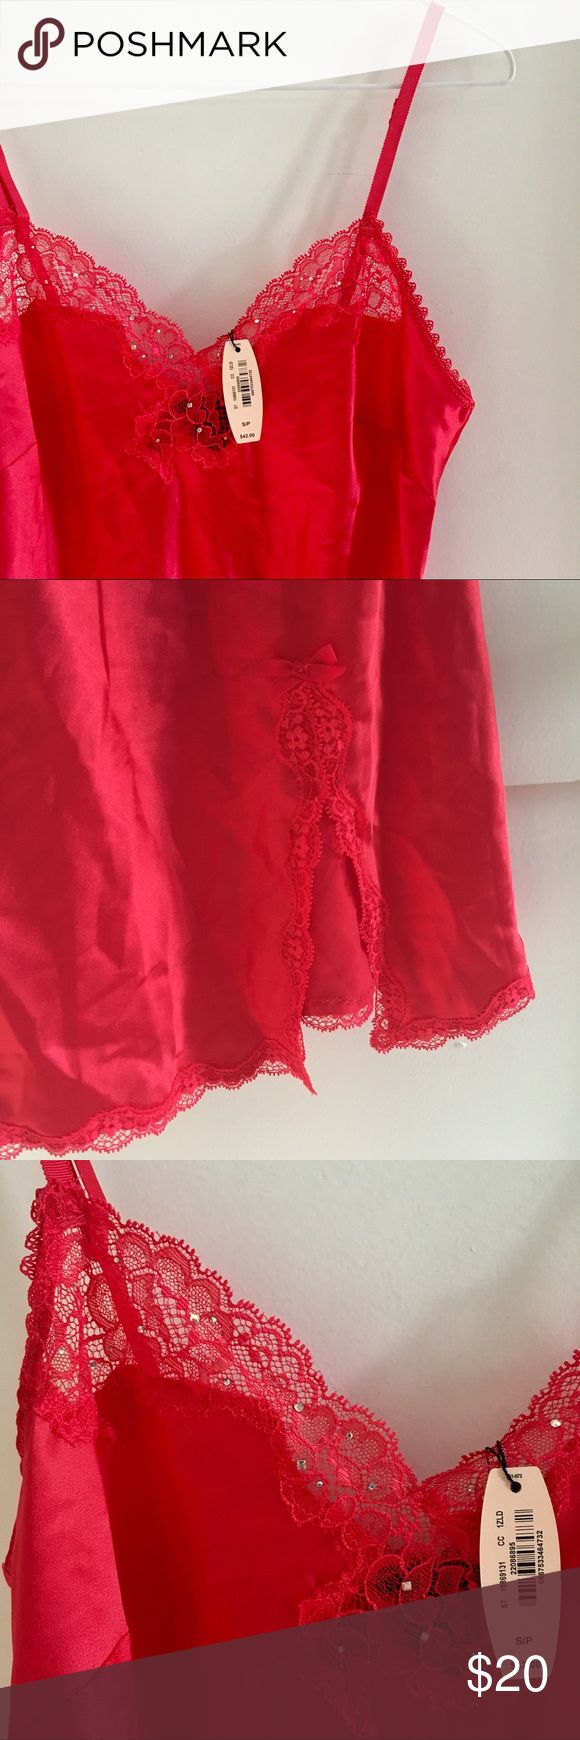 ❣️🆕Victoria's secret red silky smooth nightie! NWT Victoria's Secret red lacy nightie. Silky smooth with lace details and a petite slit up the thigh. 100% polyester Victoria's Secret Intimates & Sleepwear Chemises & Slips